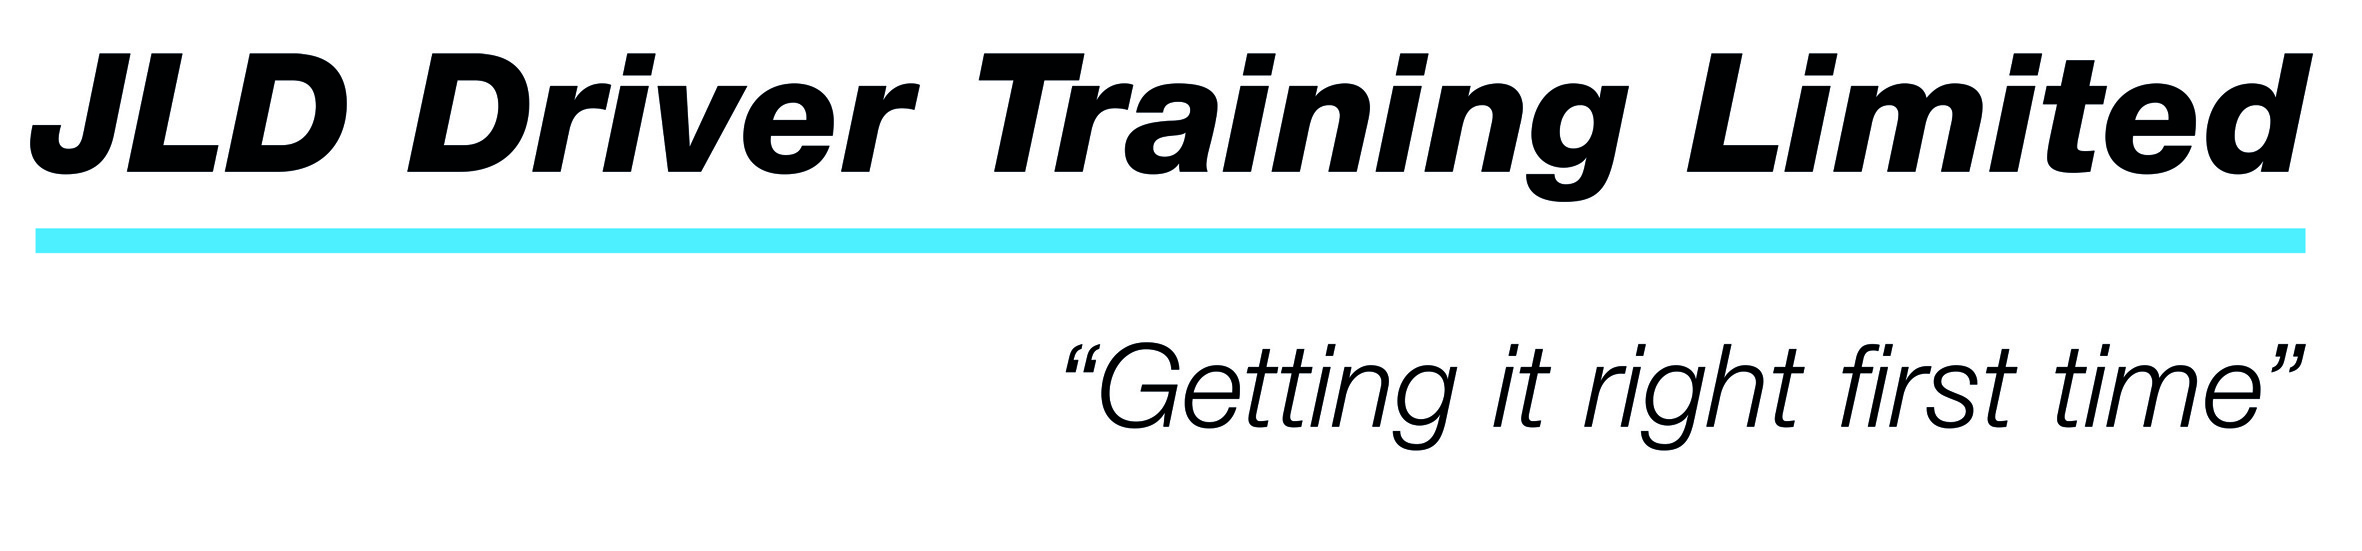 JLD Training Logo.jpg